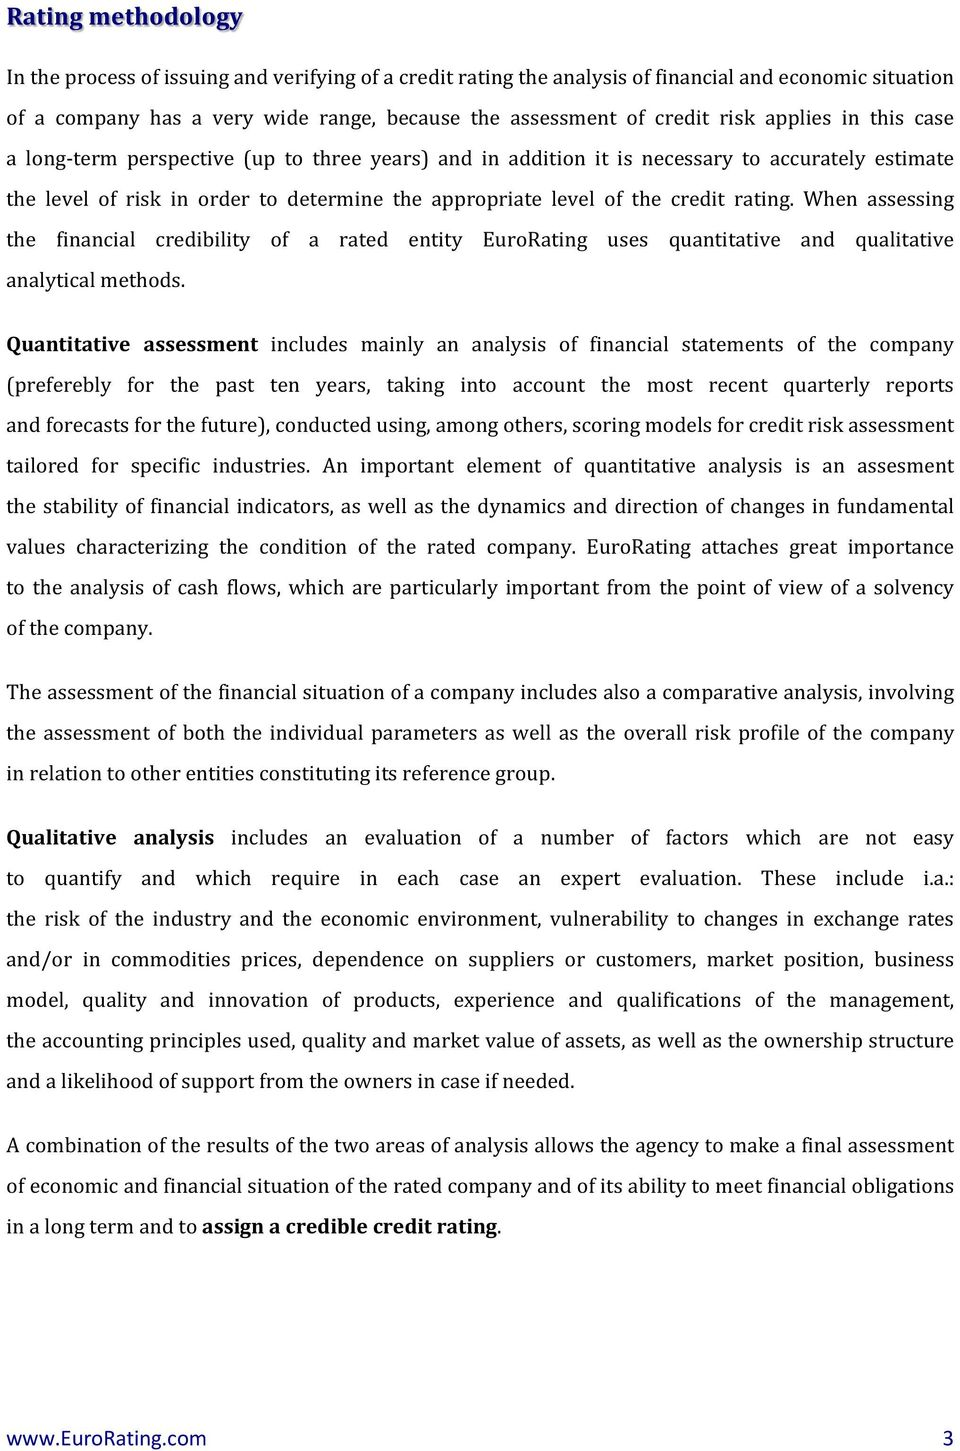 credit rating. When assessing the financial credibility of a rated entity EuroRating uses quantitative and qualitative analytical methods.